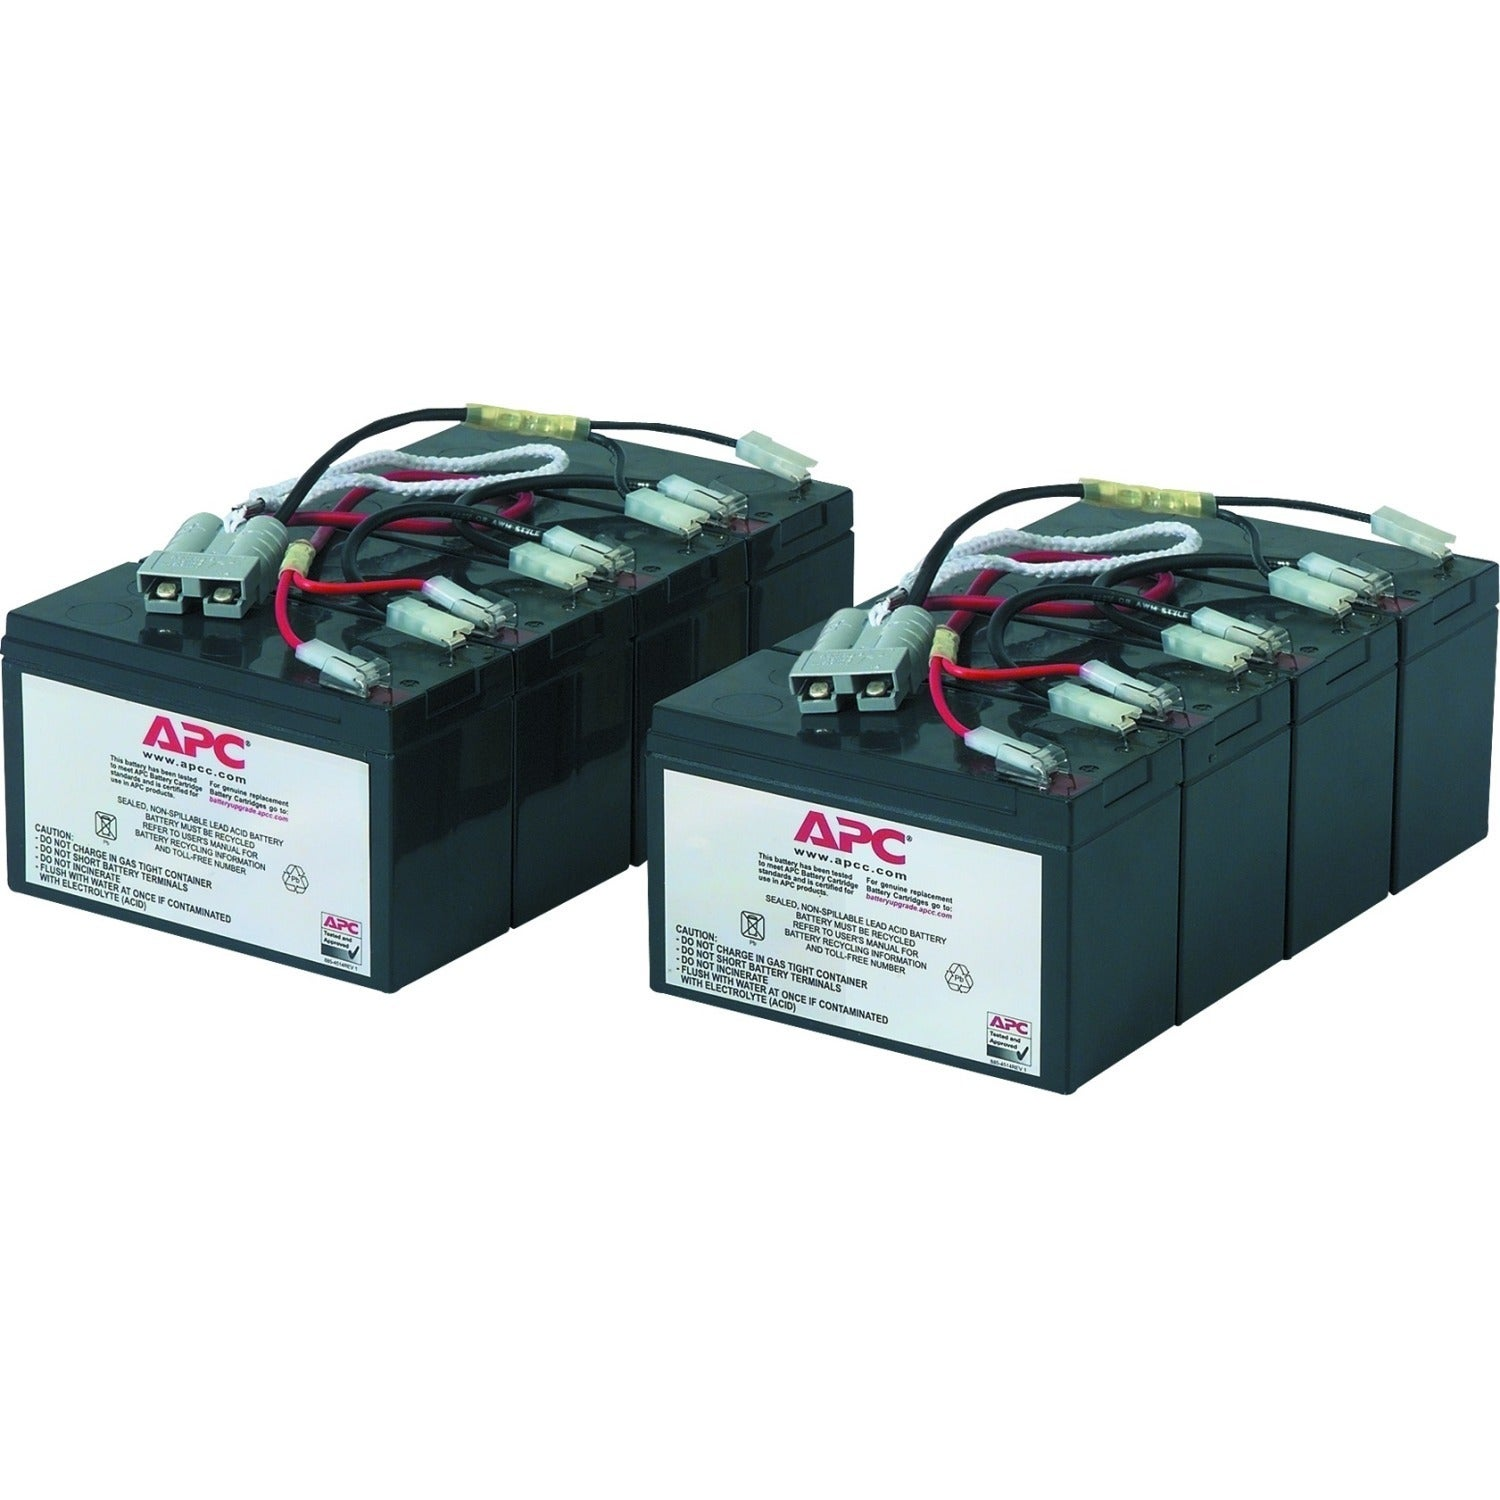 Shop APC by Schneider Electric Electronics | Discover our